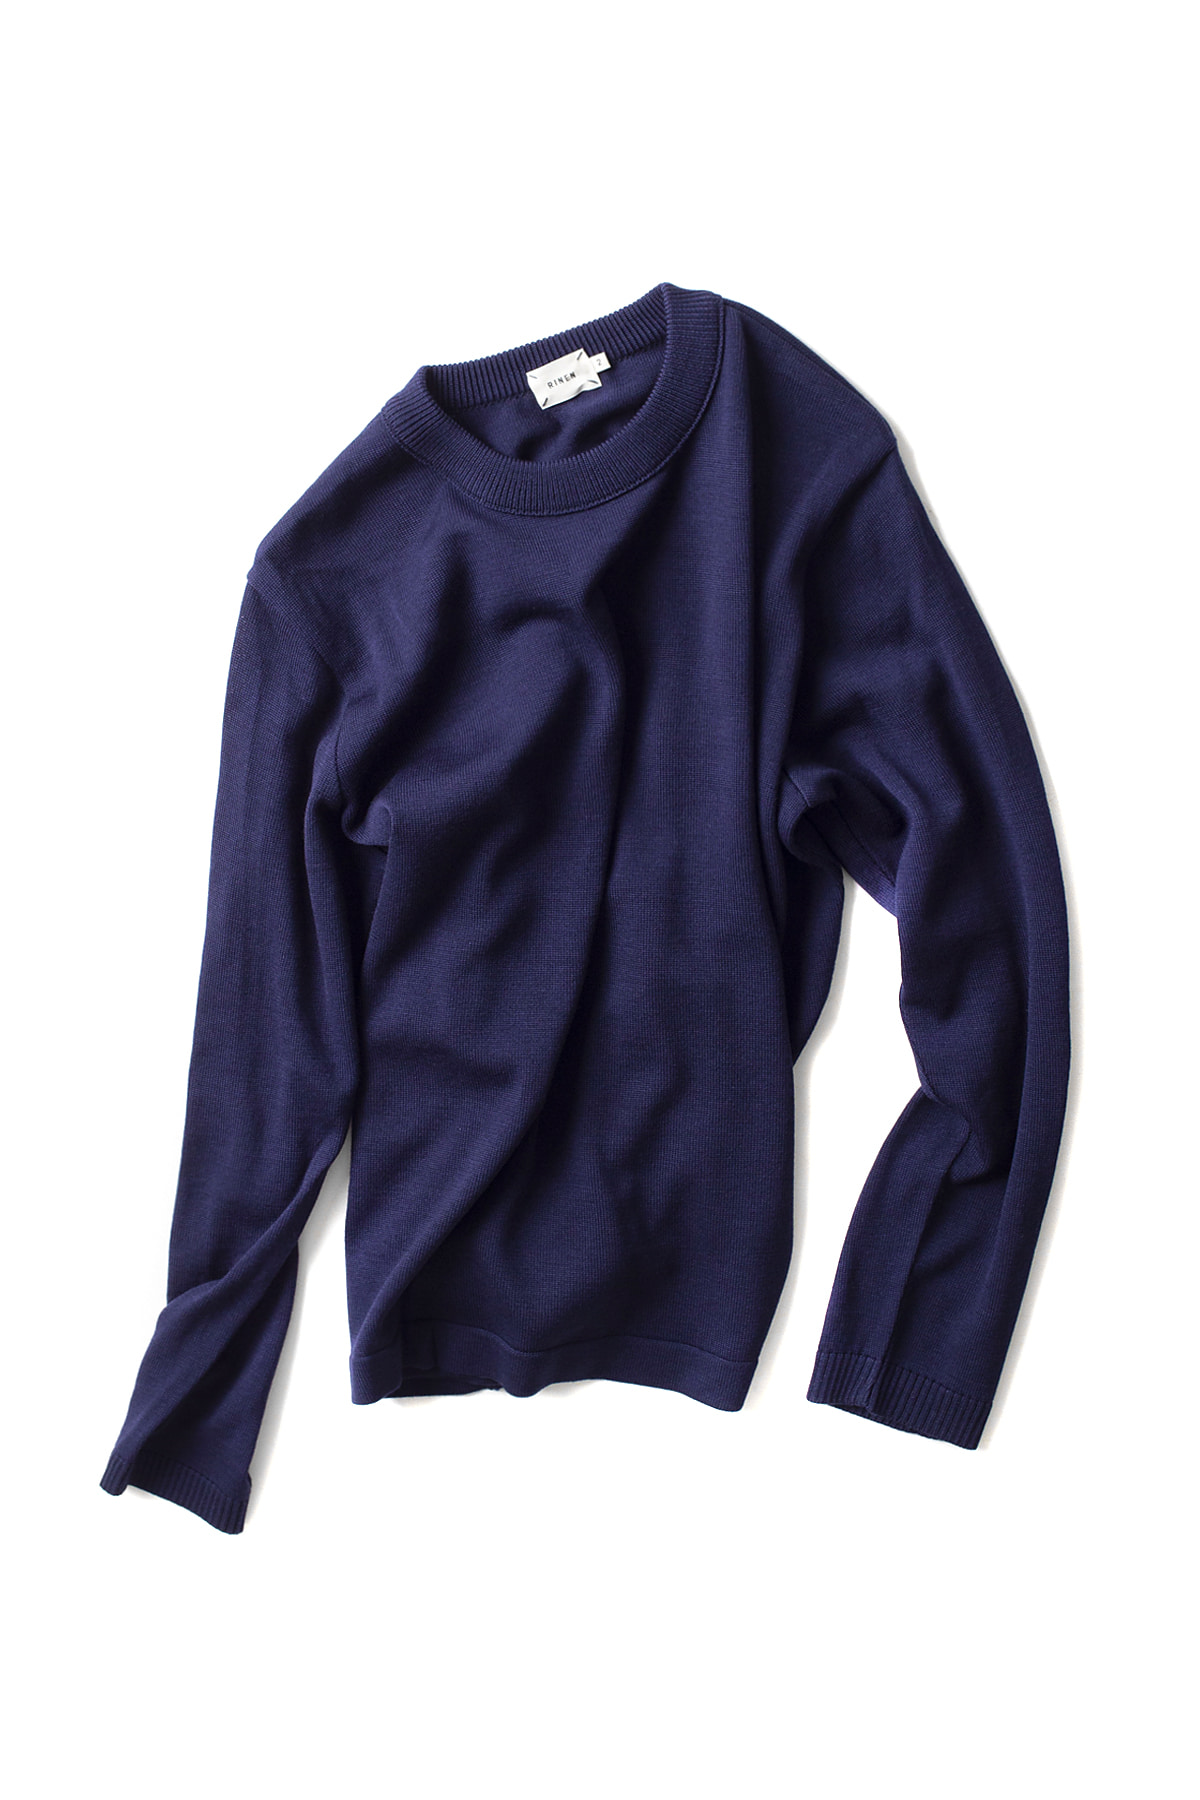 RINEN : Wool Knit Crewneck 13981 (Navy)